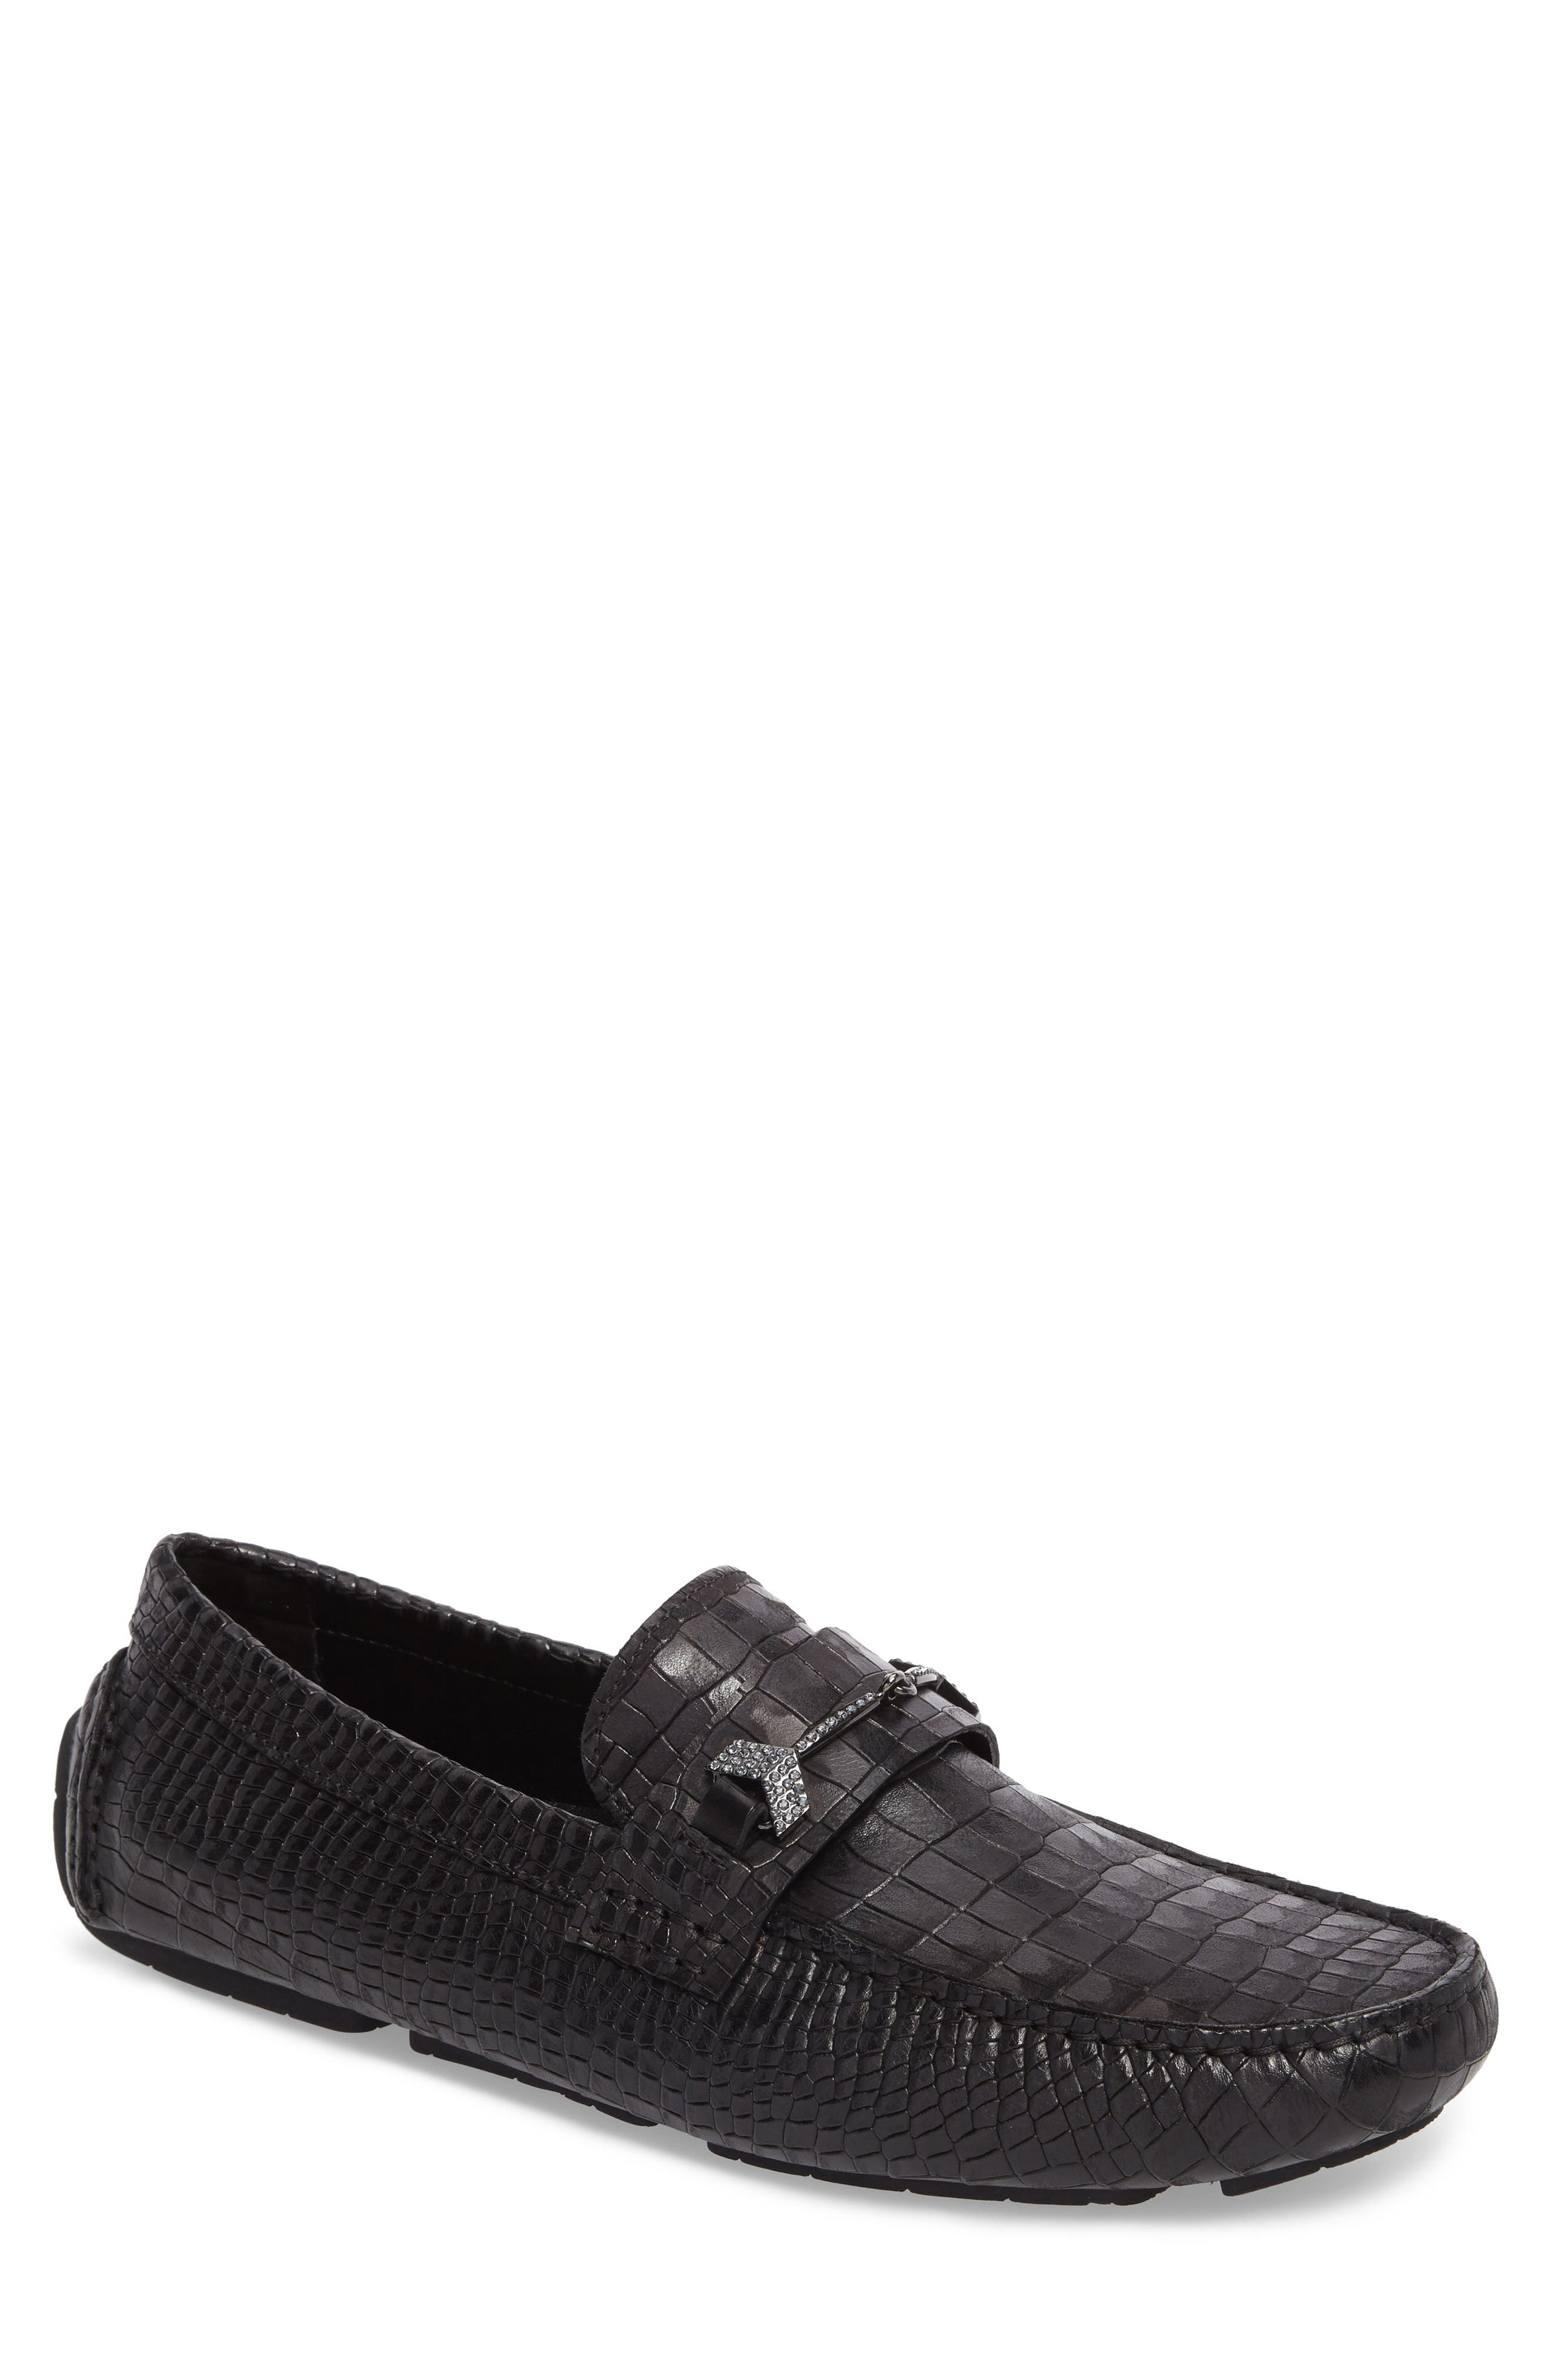 Brewer Croc Textured Driving Loafer,                             Main thumbnail 1, color,                             Black